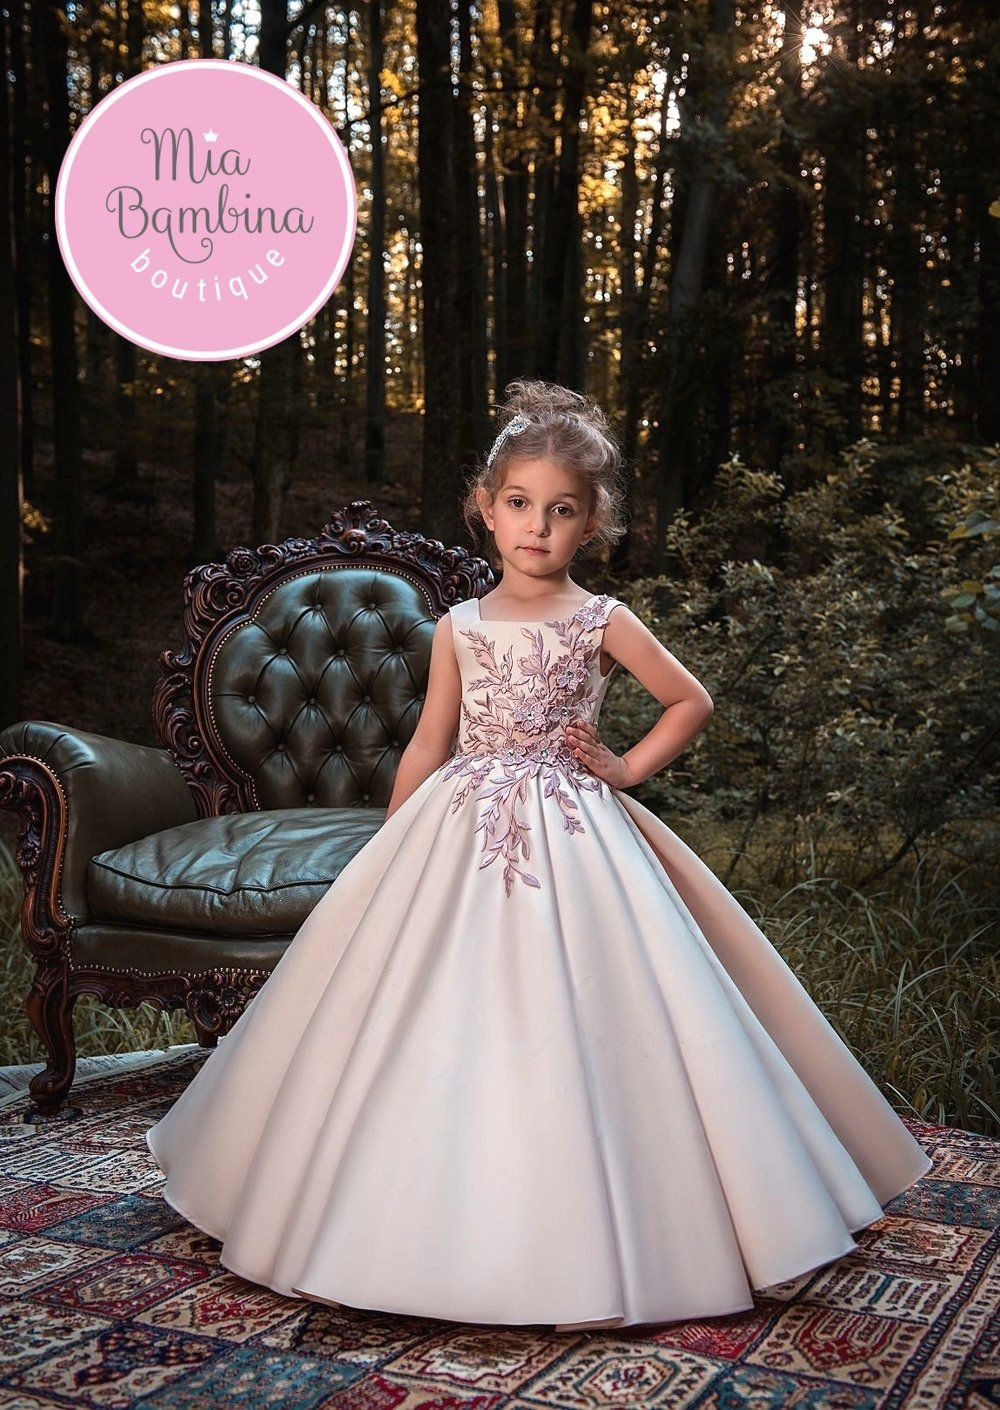 9921c34b16d The Parma Flower Girl Dress For Wedding by MB Boutique Canada. This  beautiful satin ball gown features squared neckline and floral lace  appliques ...